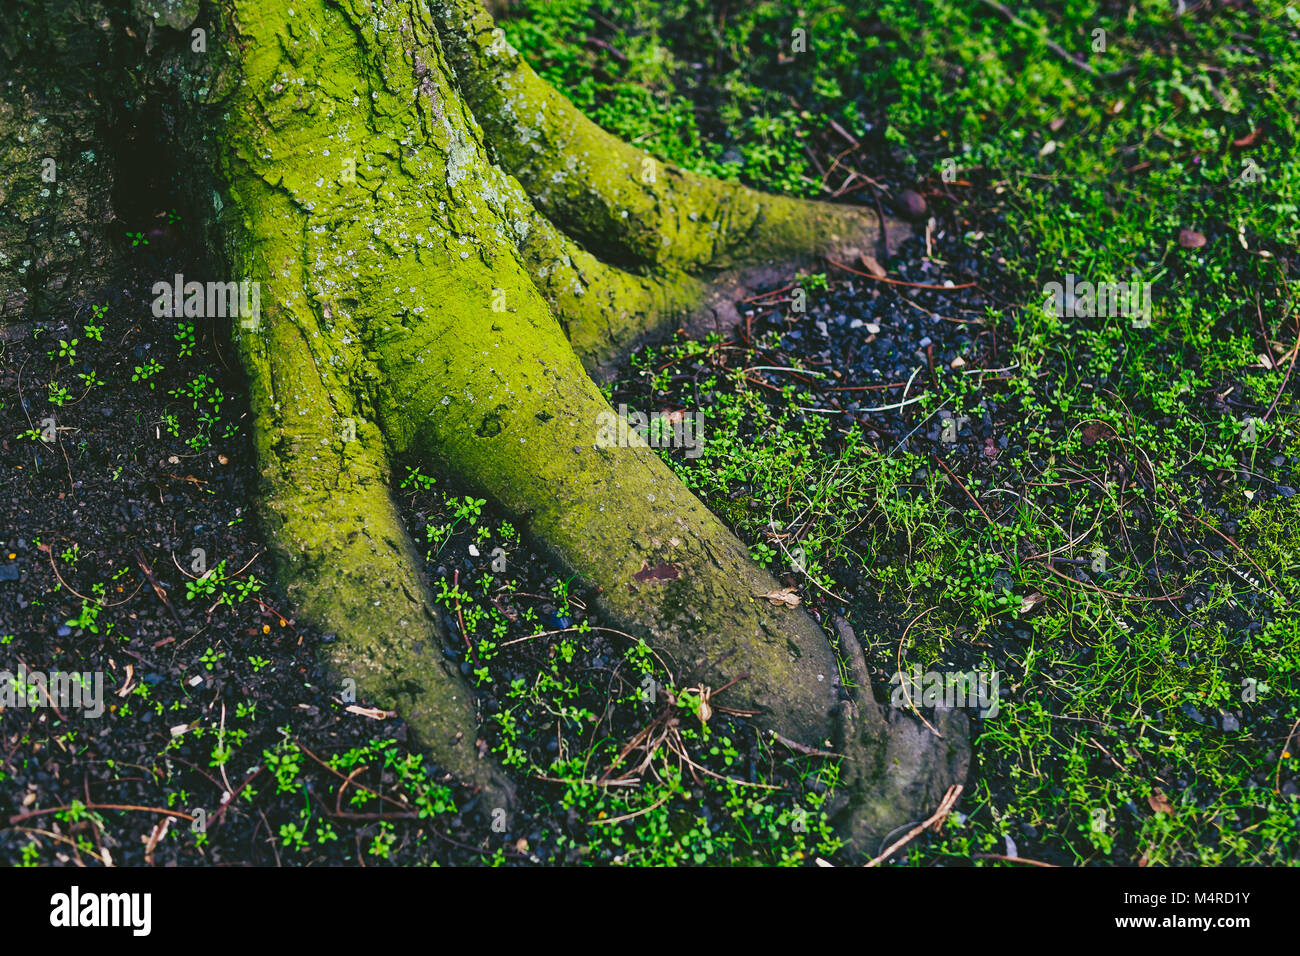 tree trunk and roots covered in intensively green moss shot in Dublin, Ireland - Stock Image